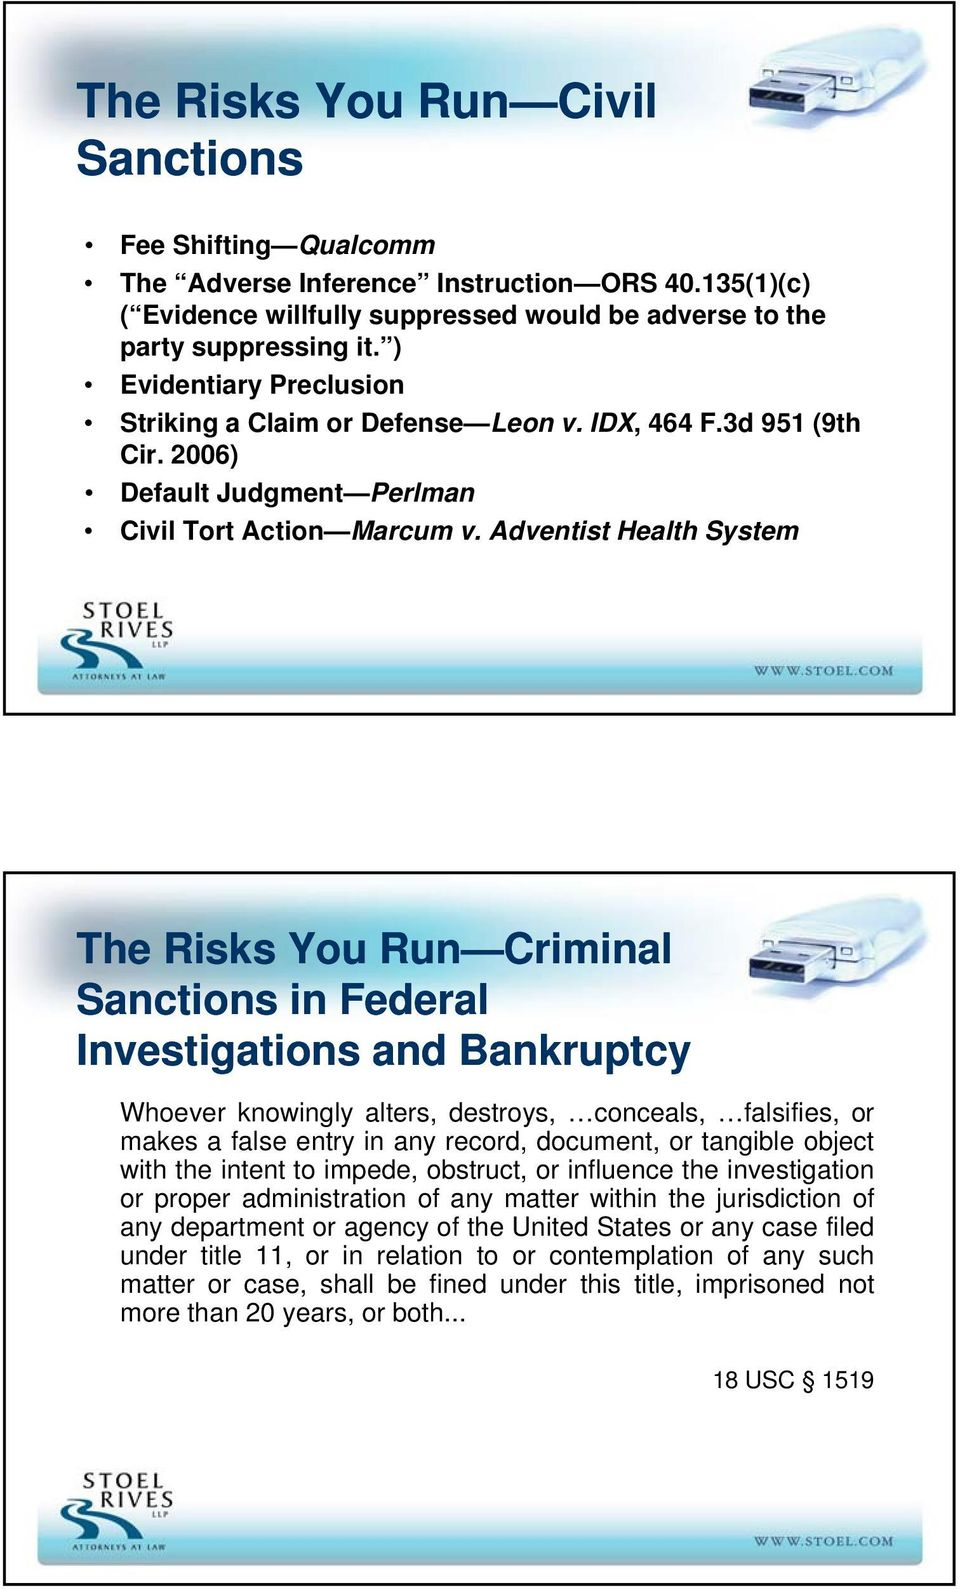 Adventist Health System The Risks You Run Criminal Sanctions in Federal Investigations and Bankruptcy Whoever knowingly alters, destroys, conceals, falsifies, or makes a false entry in any record,